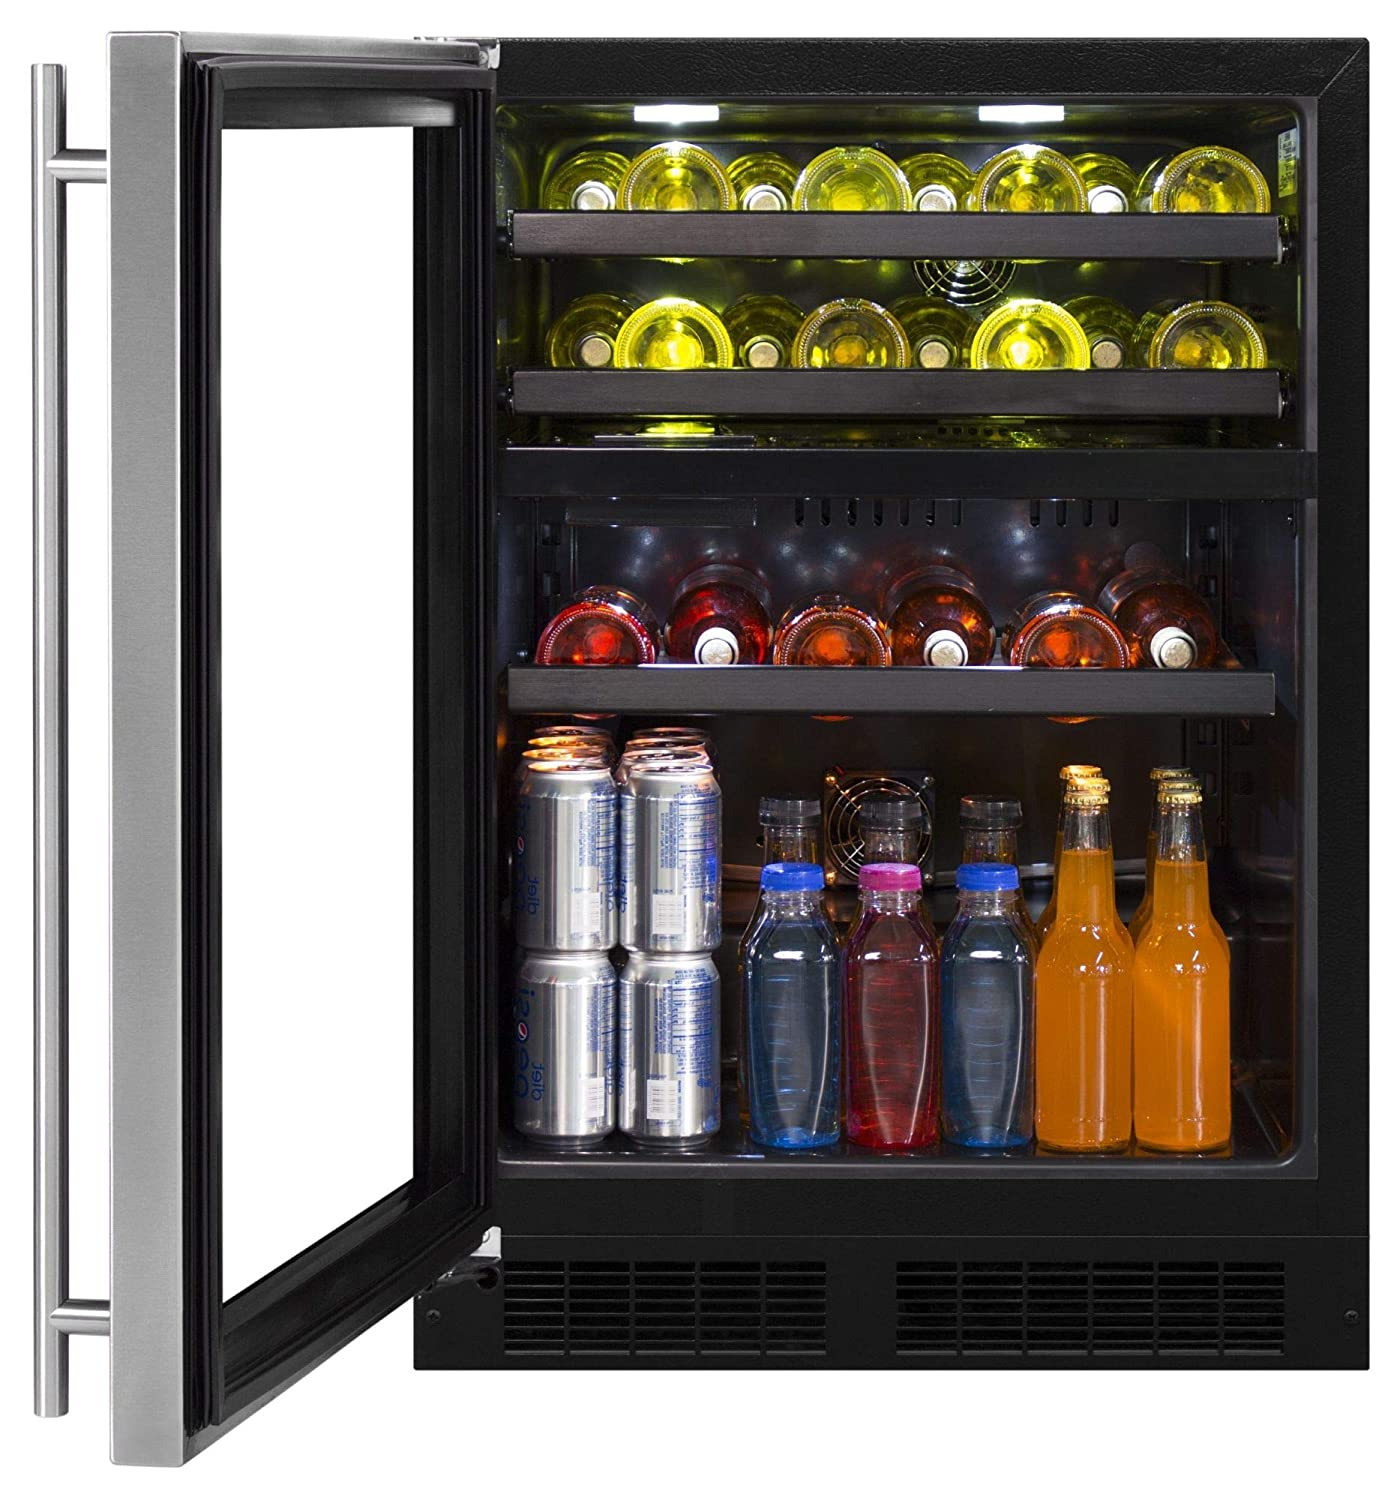 "Marvel ML24WBG1LS 24"" Wide 16-Bottle and 112-Can Built-In Dual Zone Wine and Beverage Cooler with LED Lighting, Black Toe Kick and Left Door Hinging"